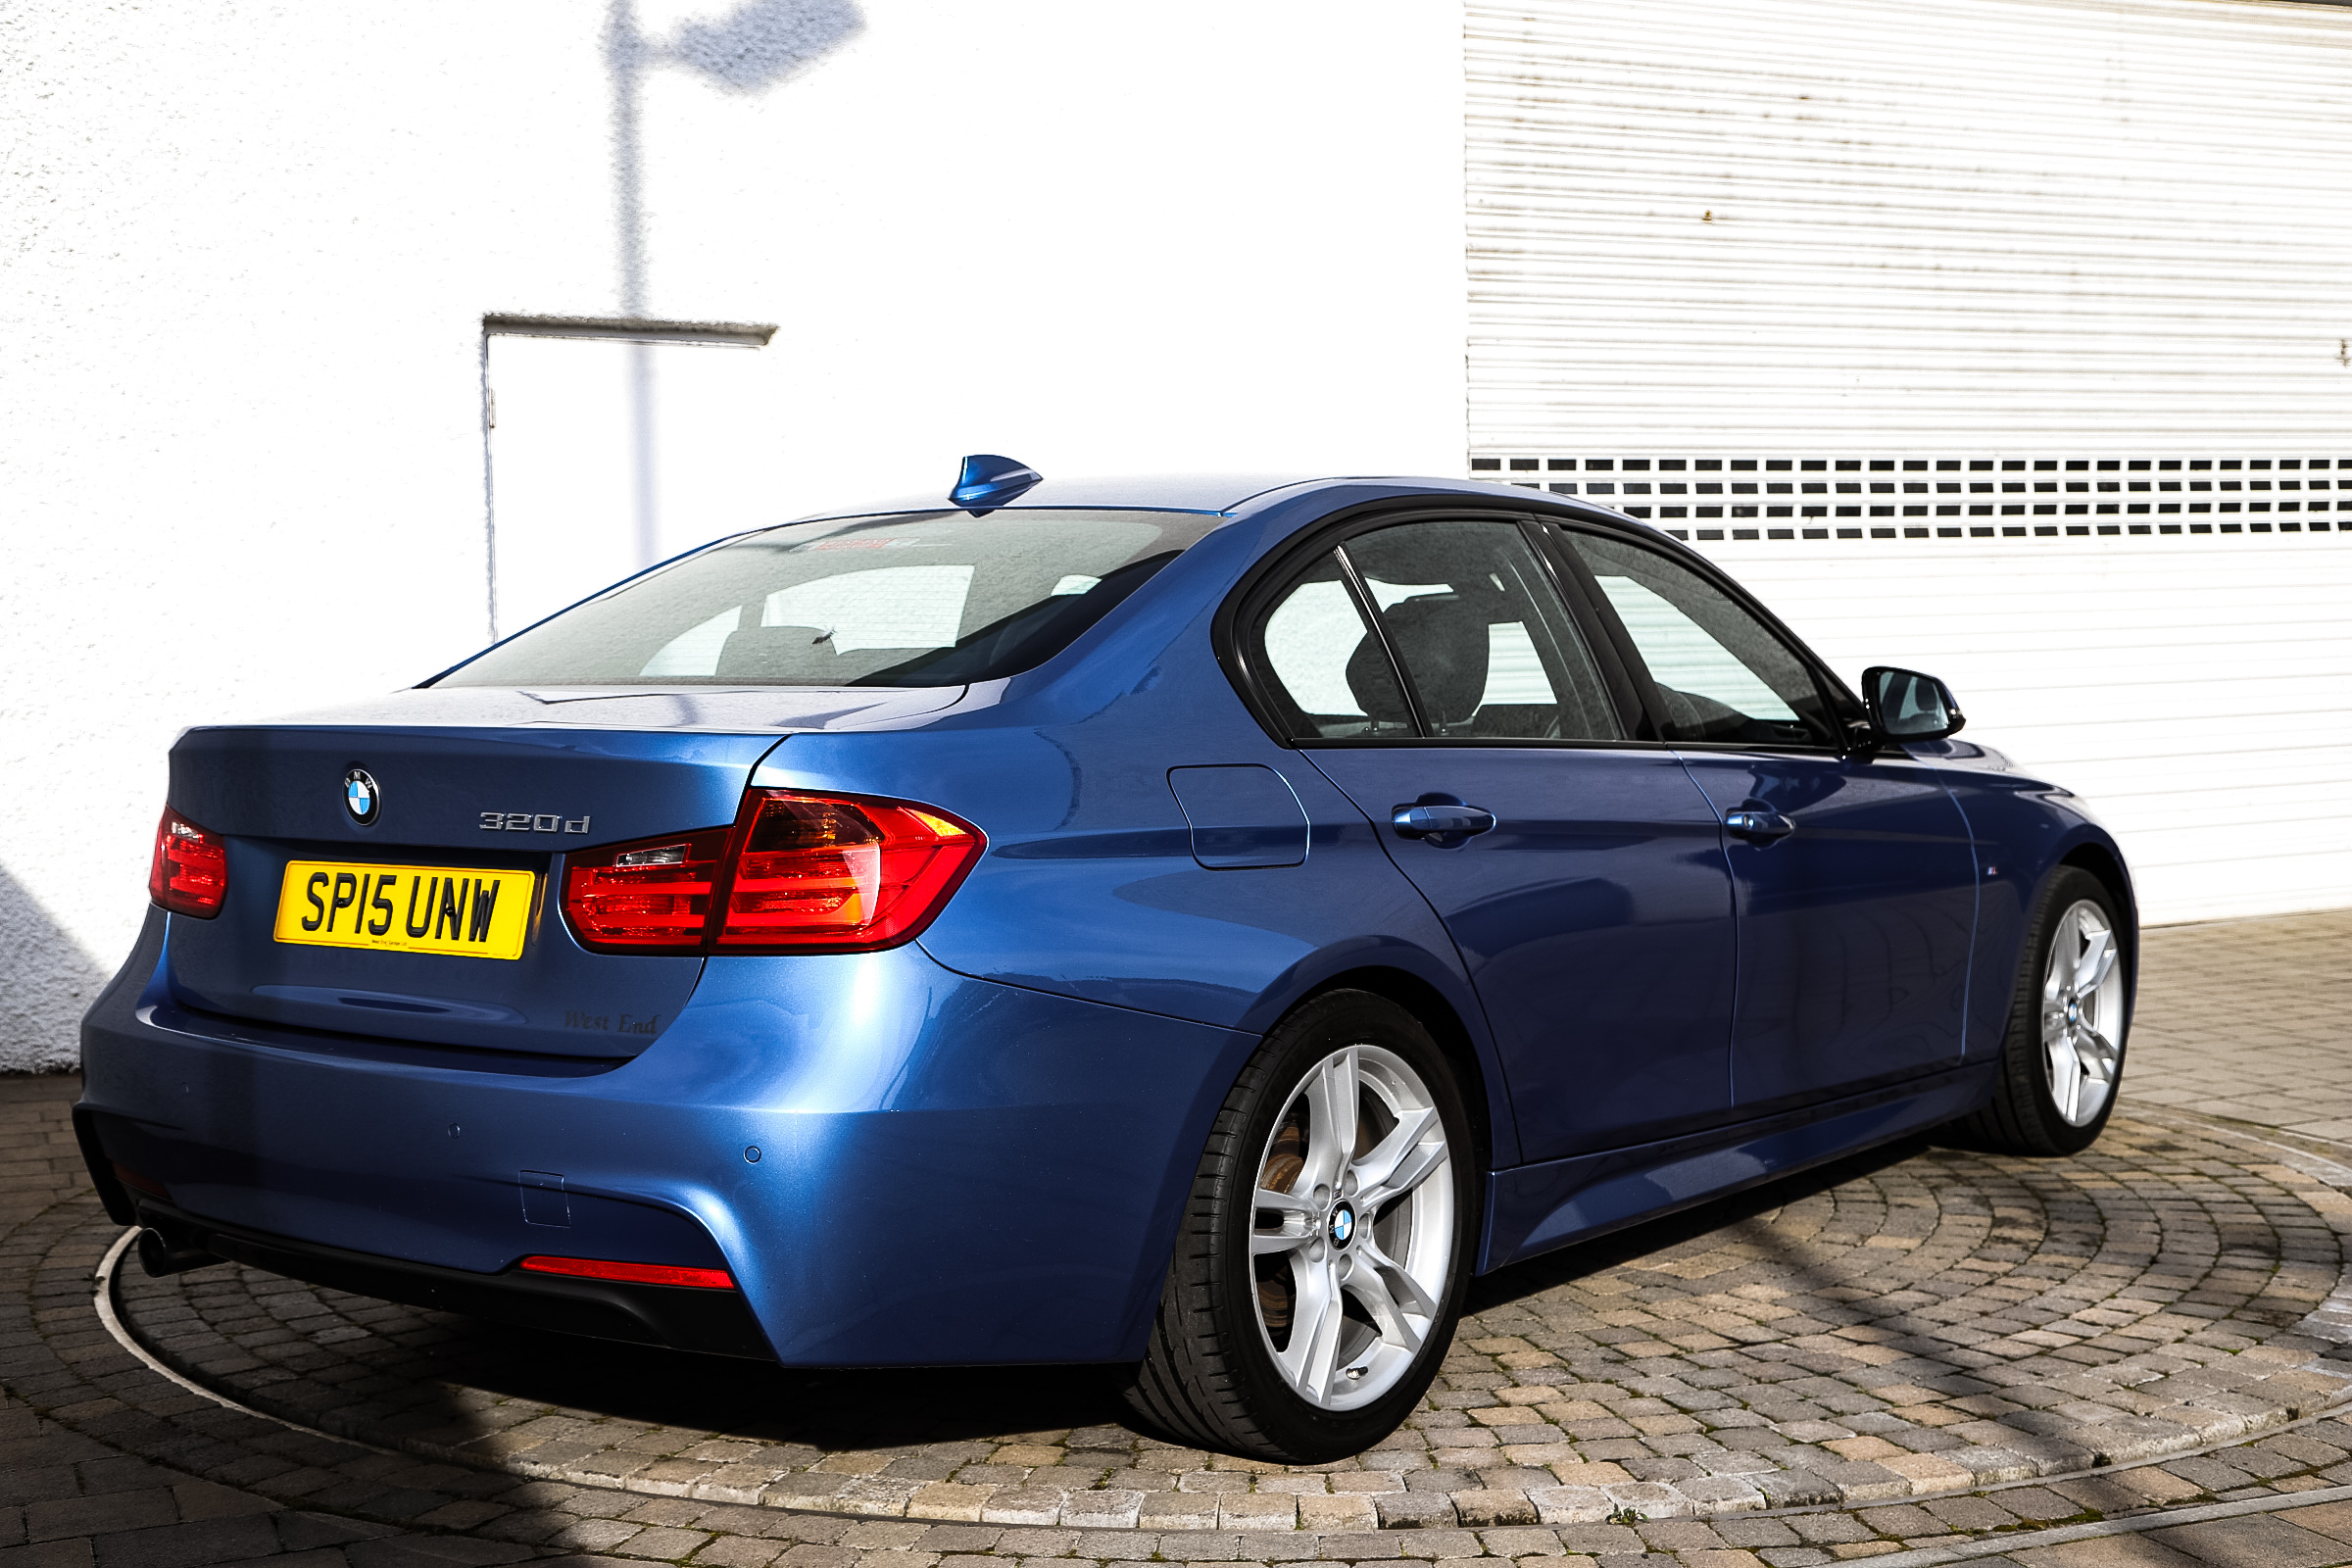 3 SERIES DIESEL SALOON 320d M Sport 4dr Step Auto [Business Media]